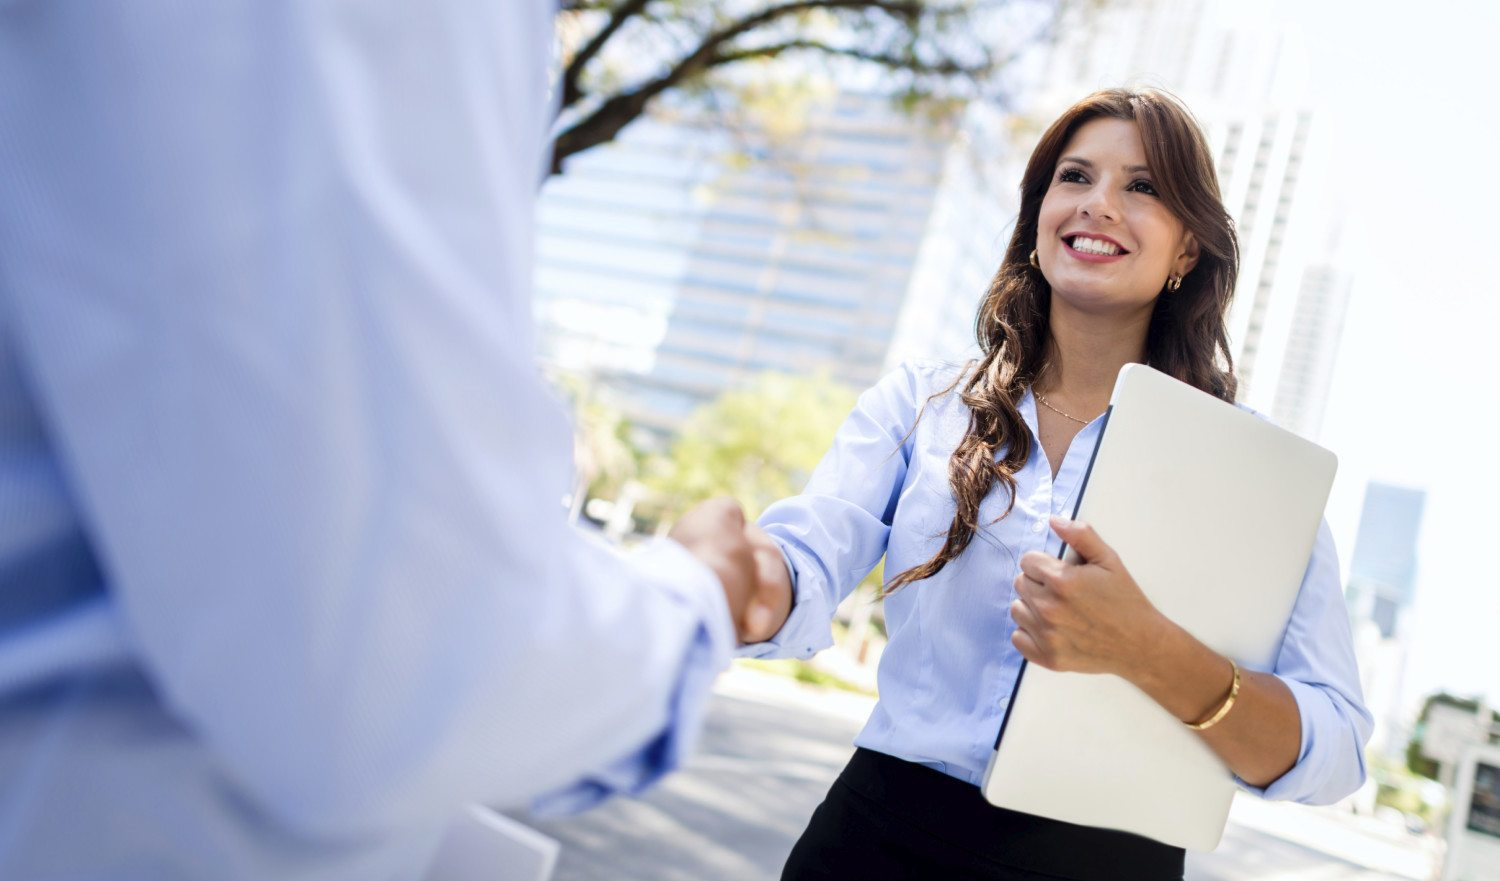 Business woman handshaking with a client - outdoors